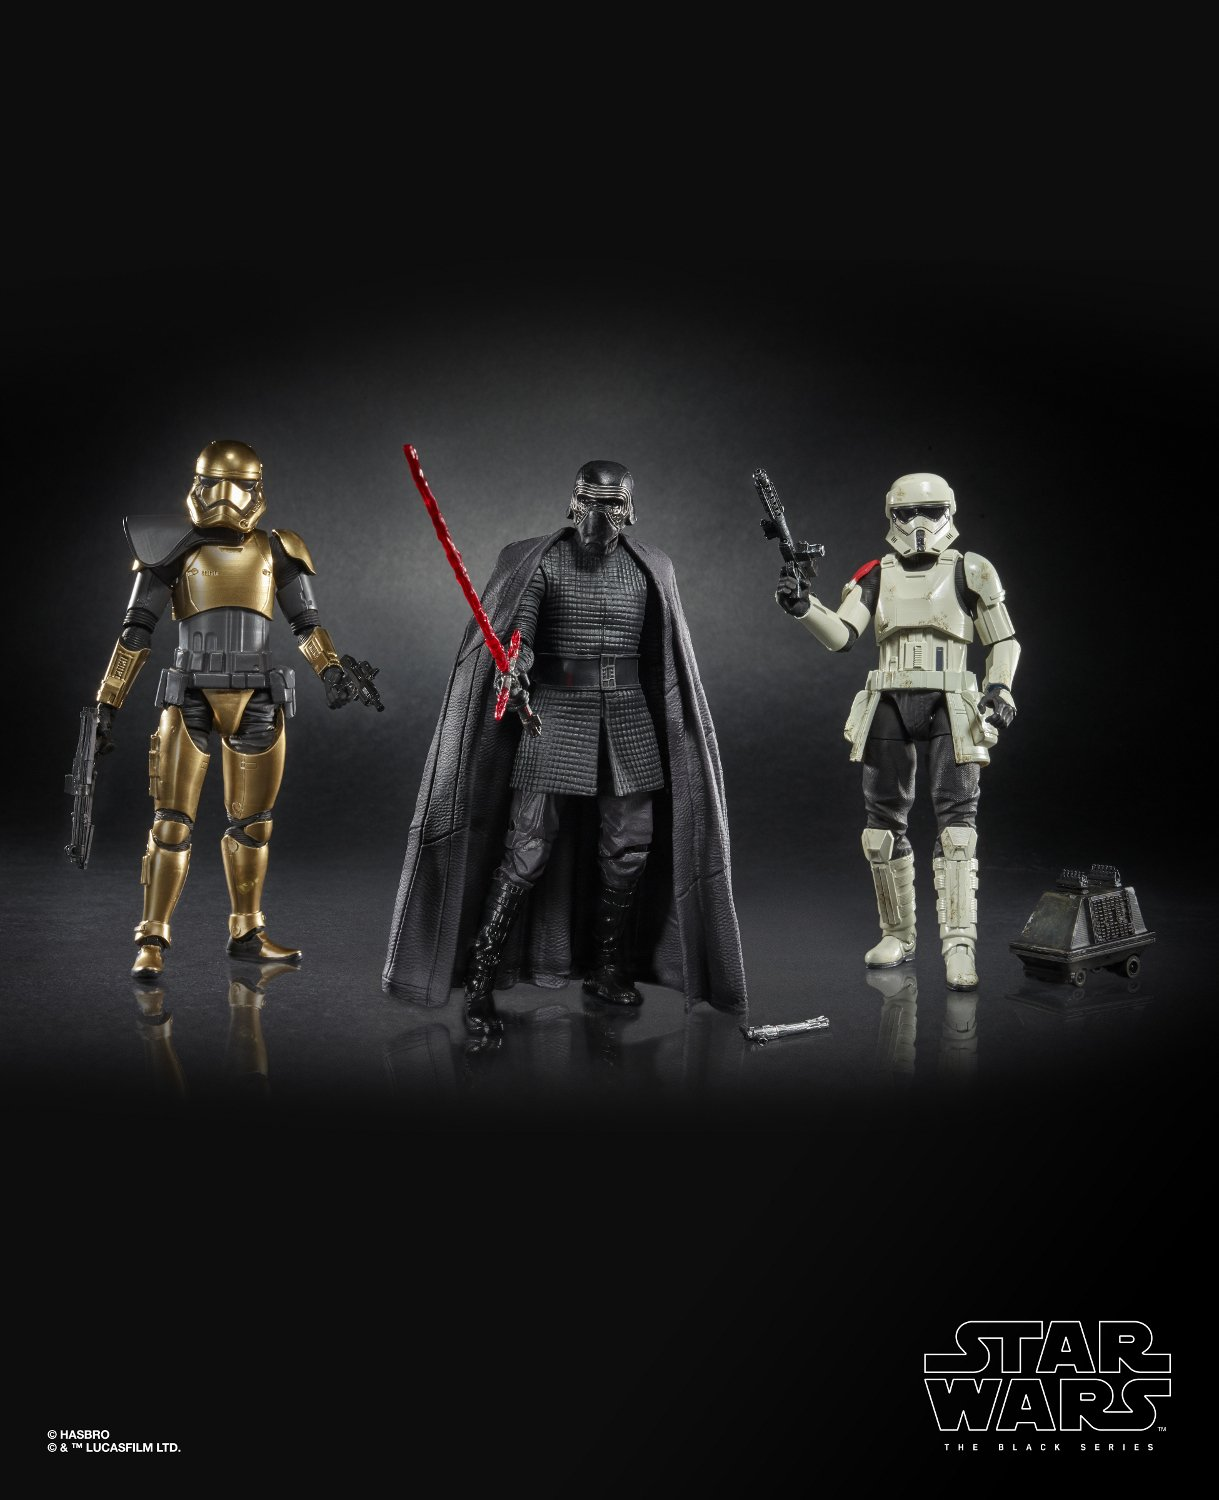 STAR-WARS-THE-BLACK-SERIES-6-INCH-THE-FI